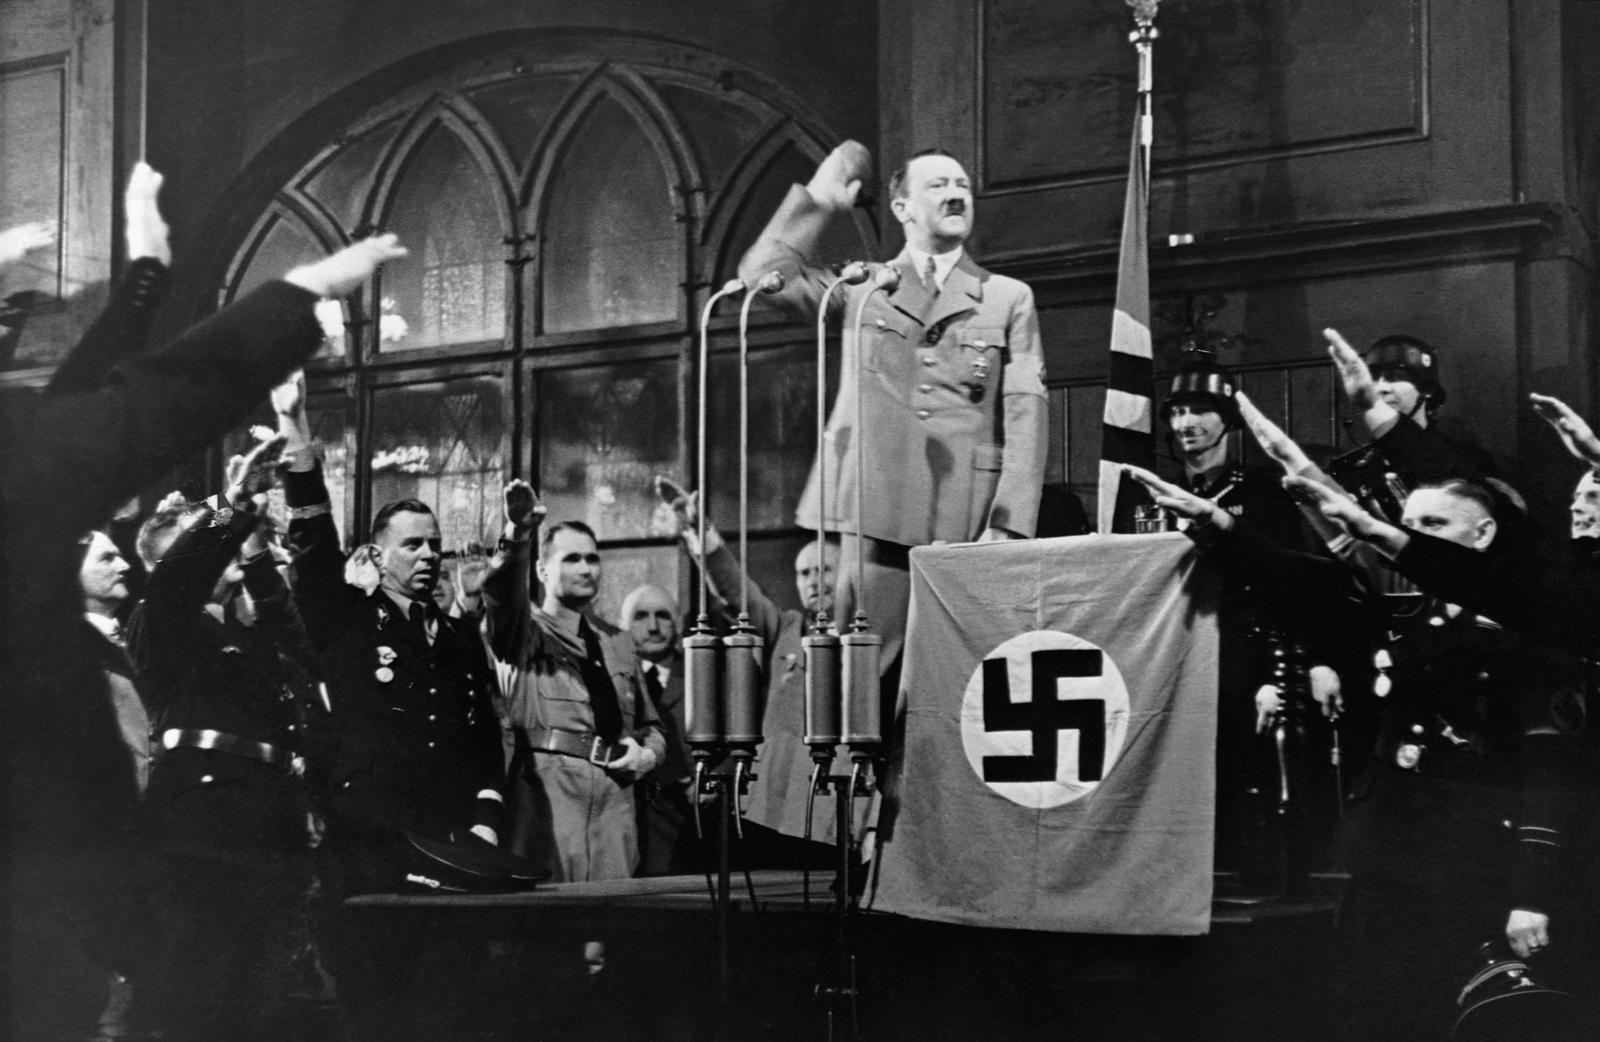 adolf hitler yielded the destructive force of nazism Adolf hitler unleashed a nightmare of terror in the most destructive force of the socialism national socialist nazi never nsdap occurred otto strasser.